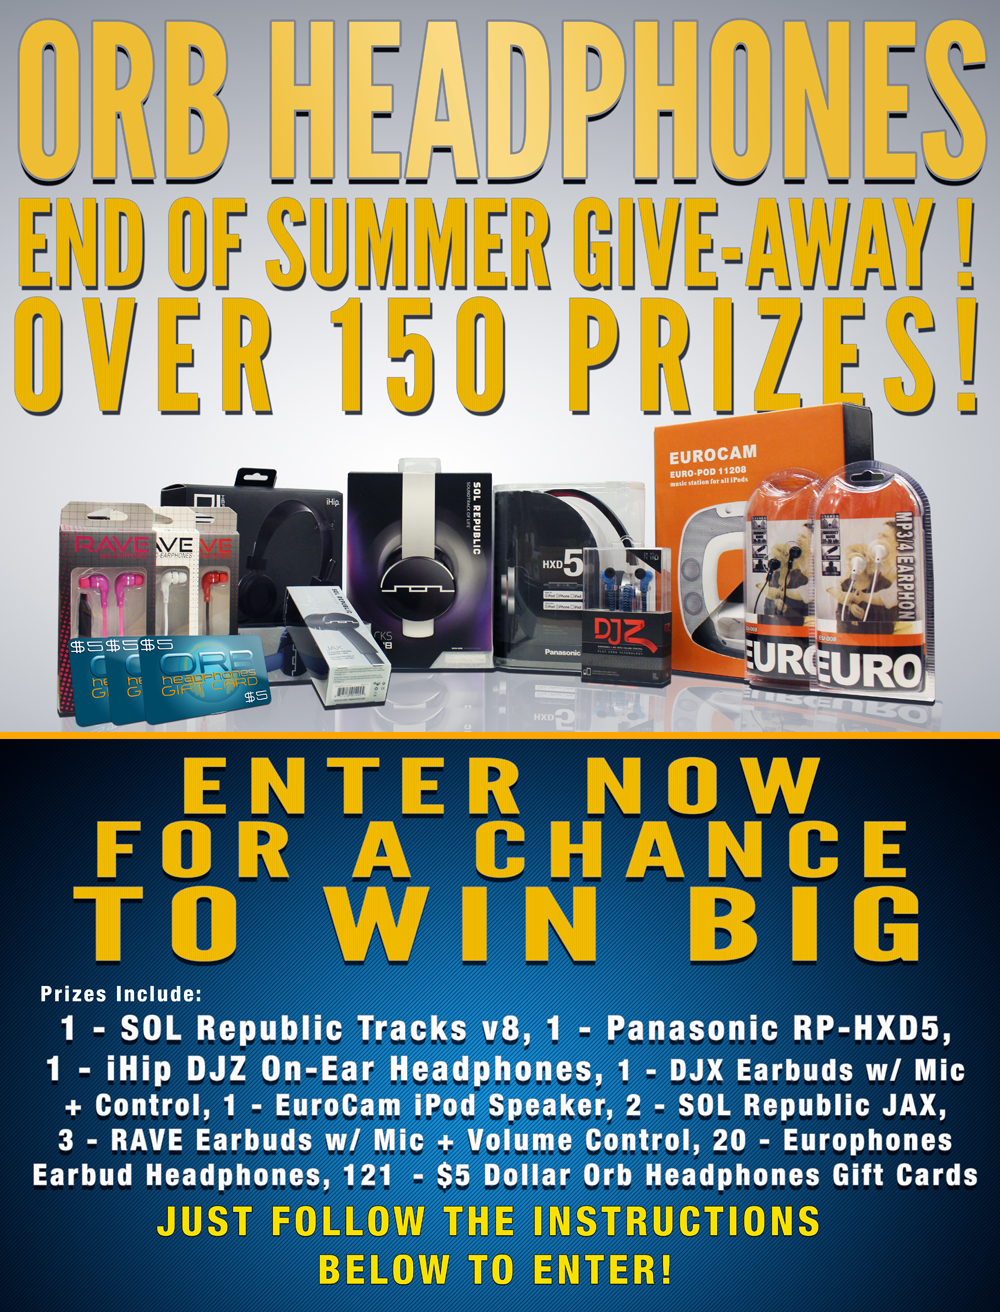 Enter To Win 1 of Over 150 Prizes from Orb Headphones